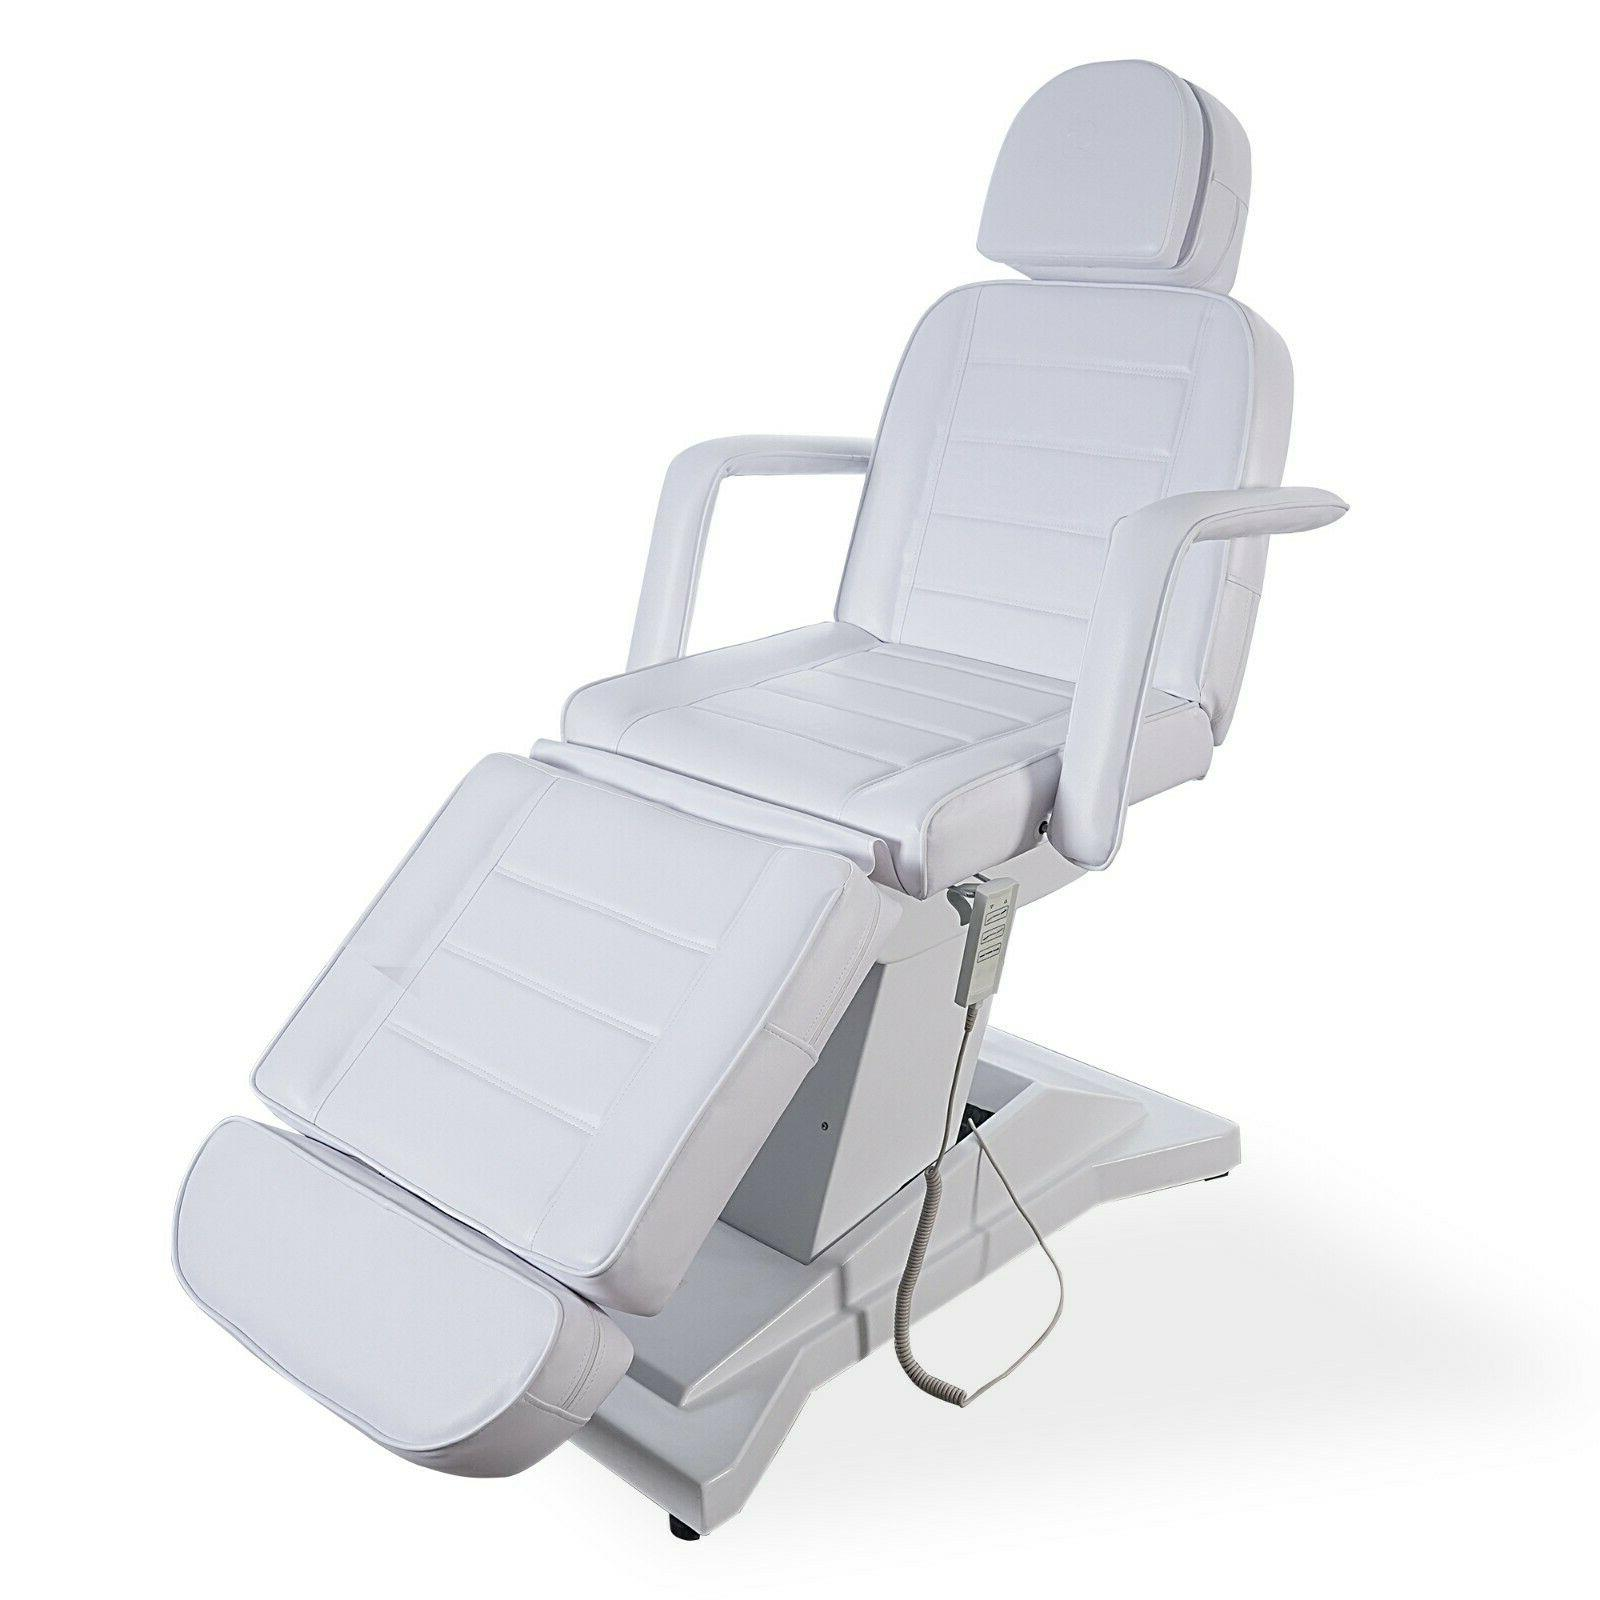 professional adjustable massage chair with 3 electric